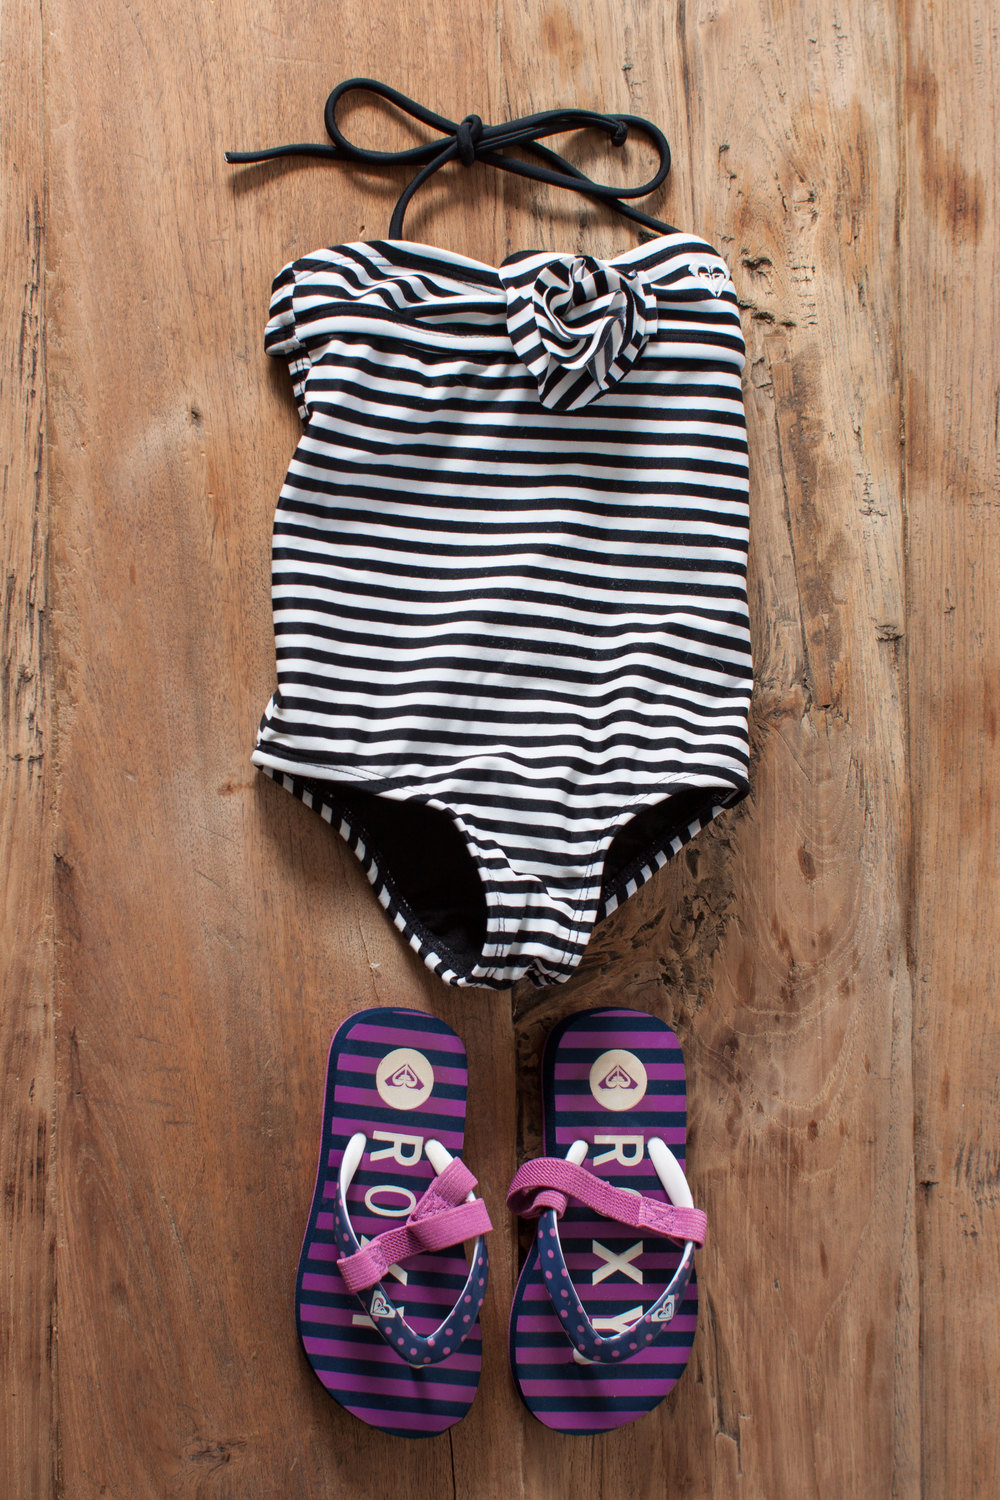 Girls Roxy Spirit bathing suit Size: 2T. The Rookery Kids. $6.95. Roxy Spirit flip flops. $8.